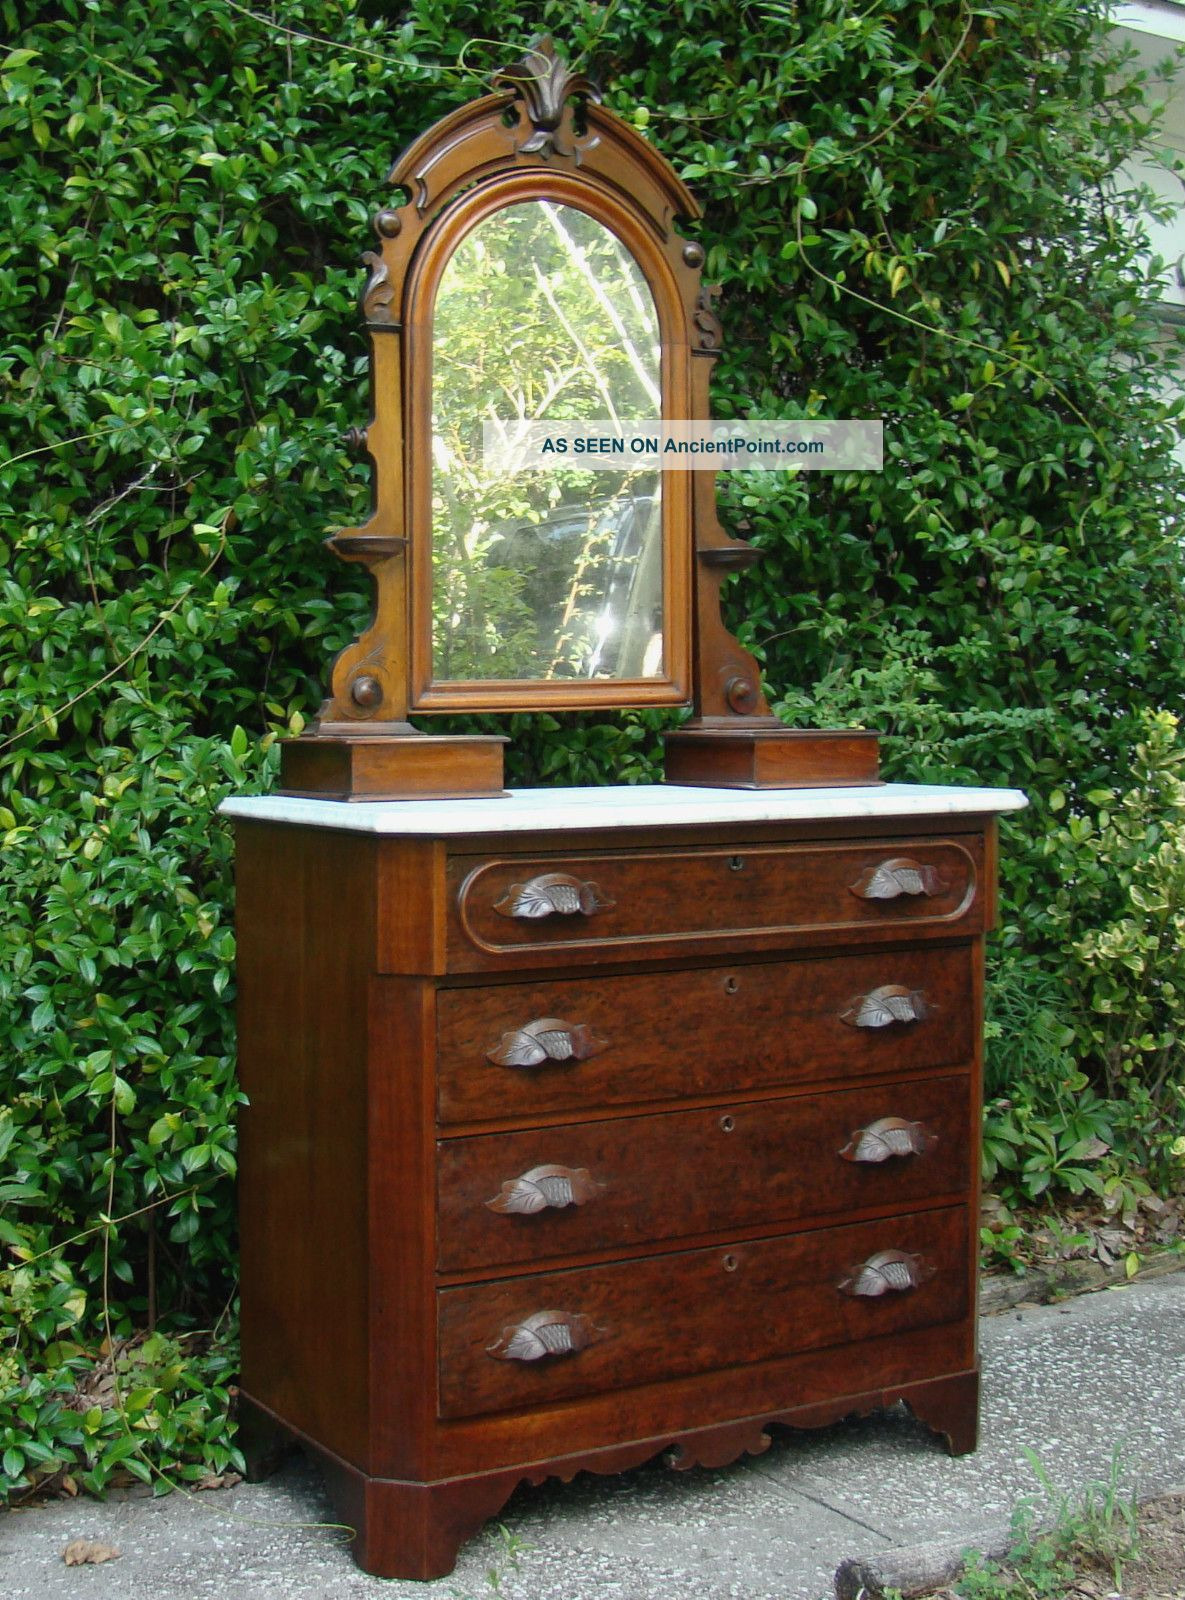 american charleston sc antique walnut chest of drawers mirror marble glove boxes